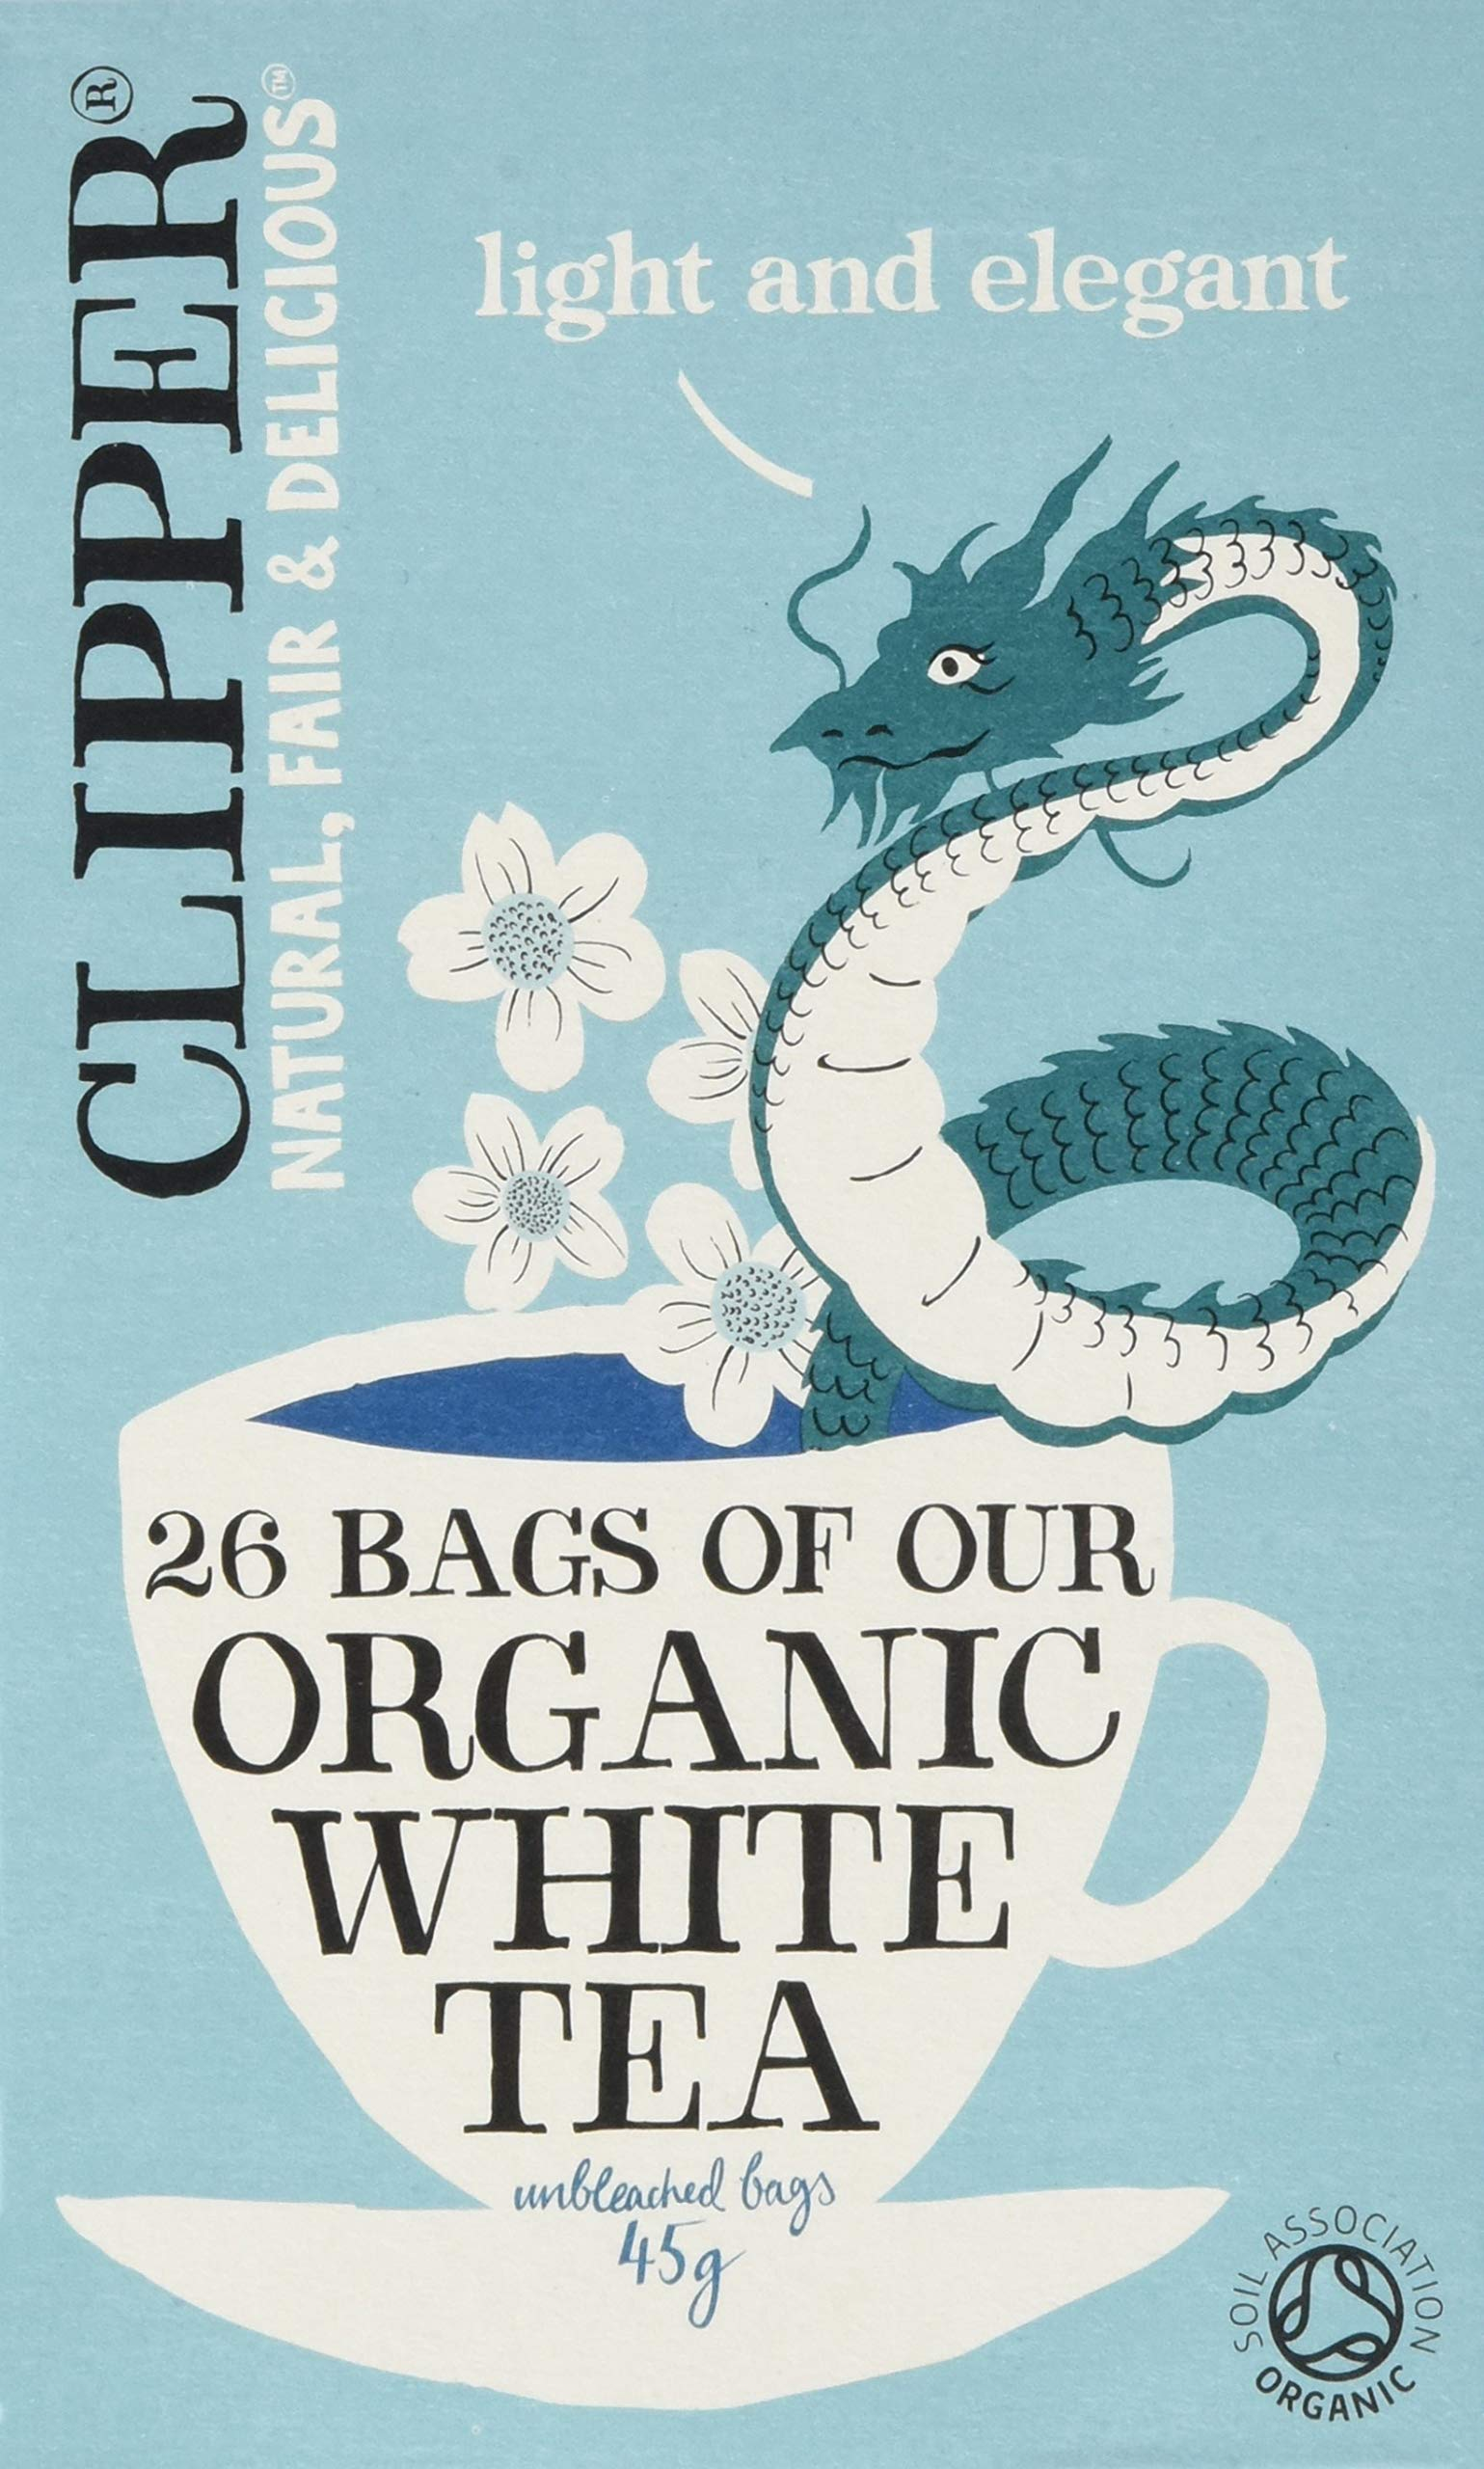 Clipper organic white tea bundle (soil association) (white tea) (6 packs of 26 bags) (156 bags) (brews in 1-3 minutes)